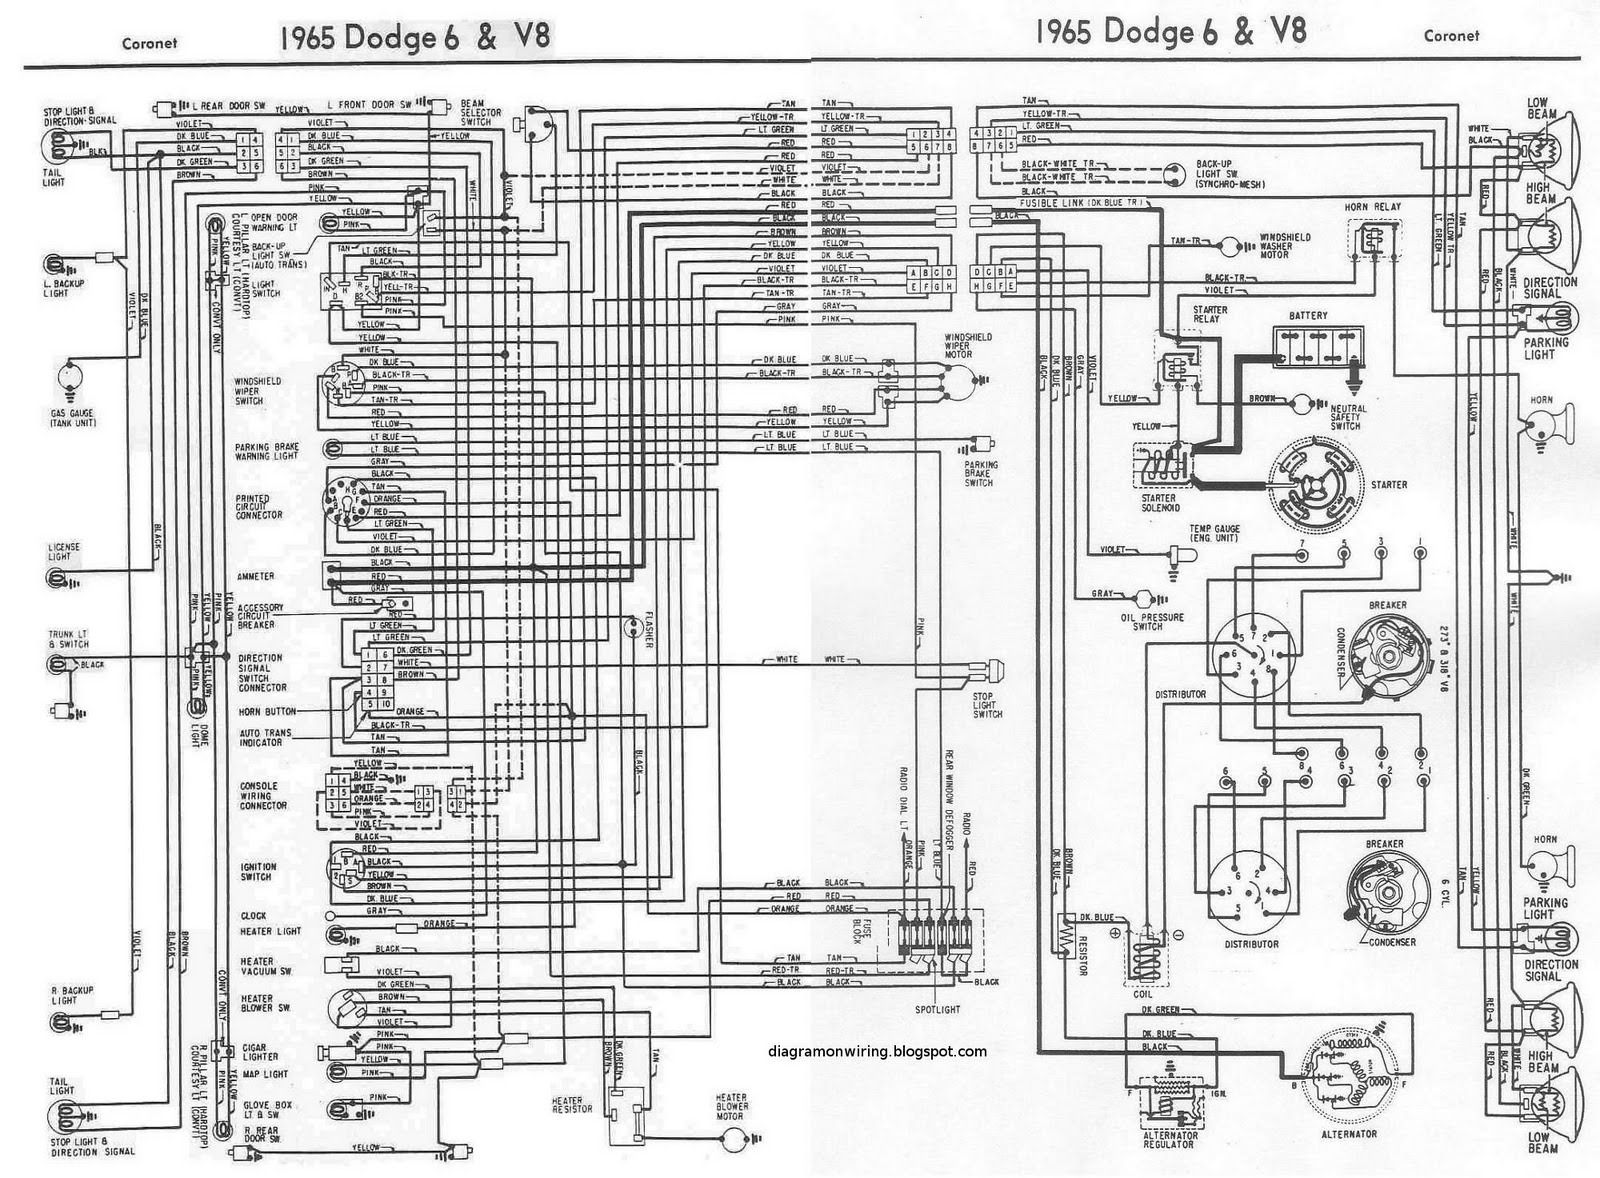 Dodge 6 and V8 Coro 1965 Complete Wiring Diagram | All